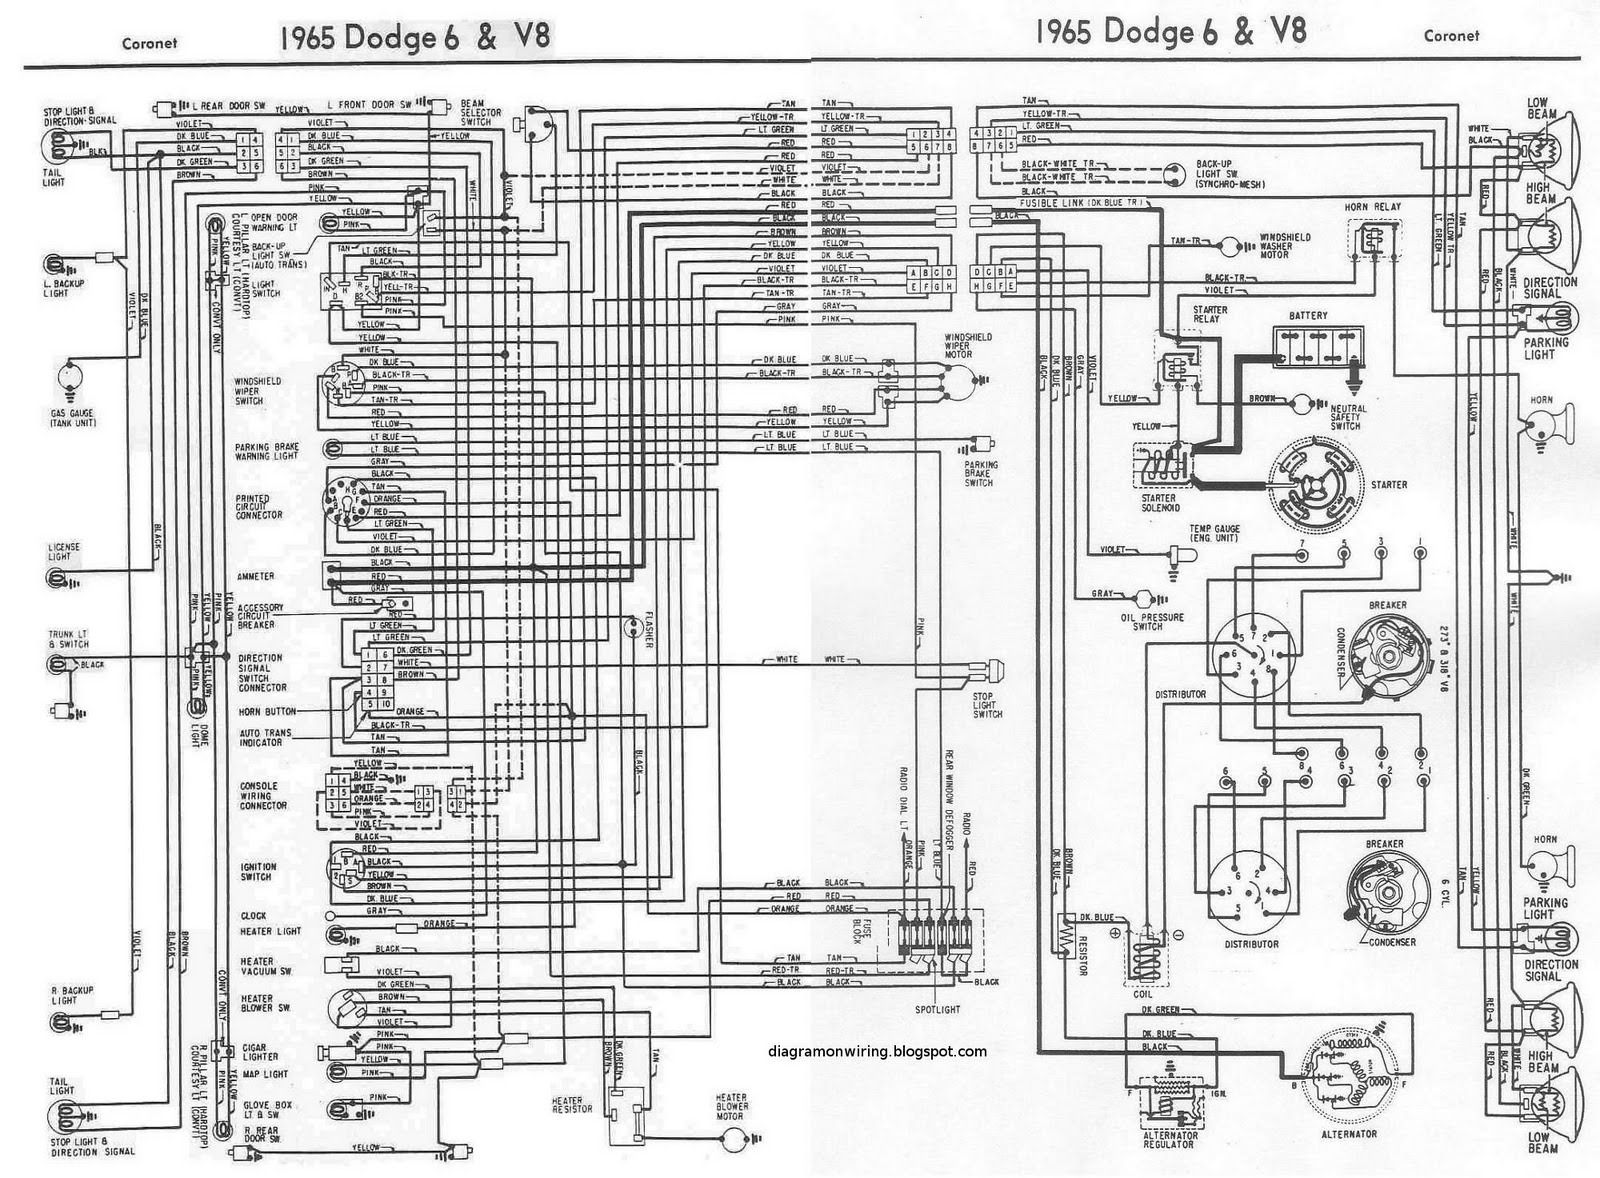 Dodge 6 and V8 Coro 1965 Complete Wiring Diagram | All